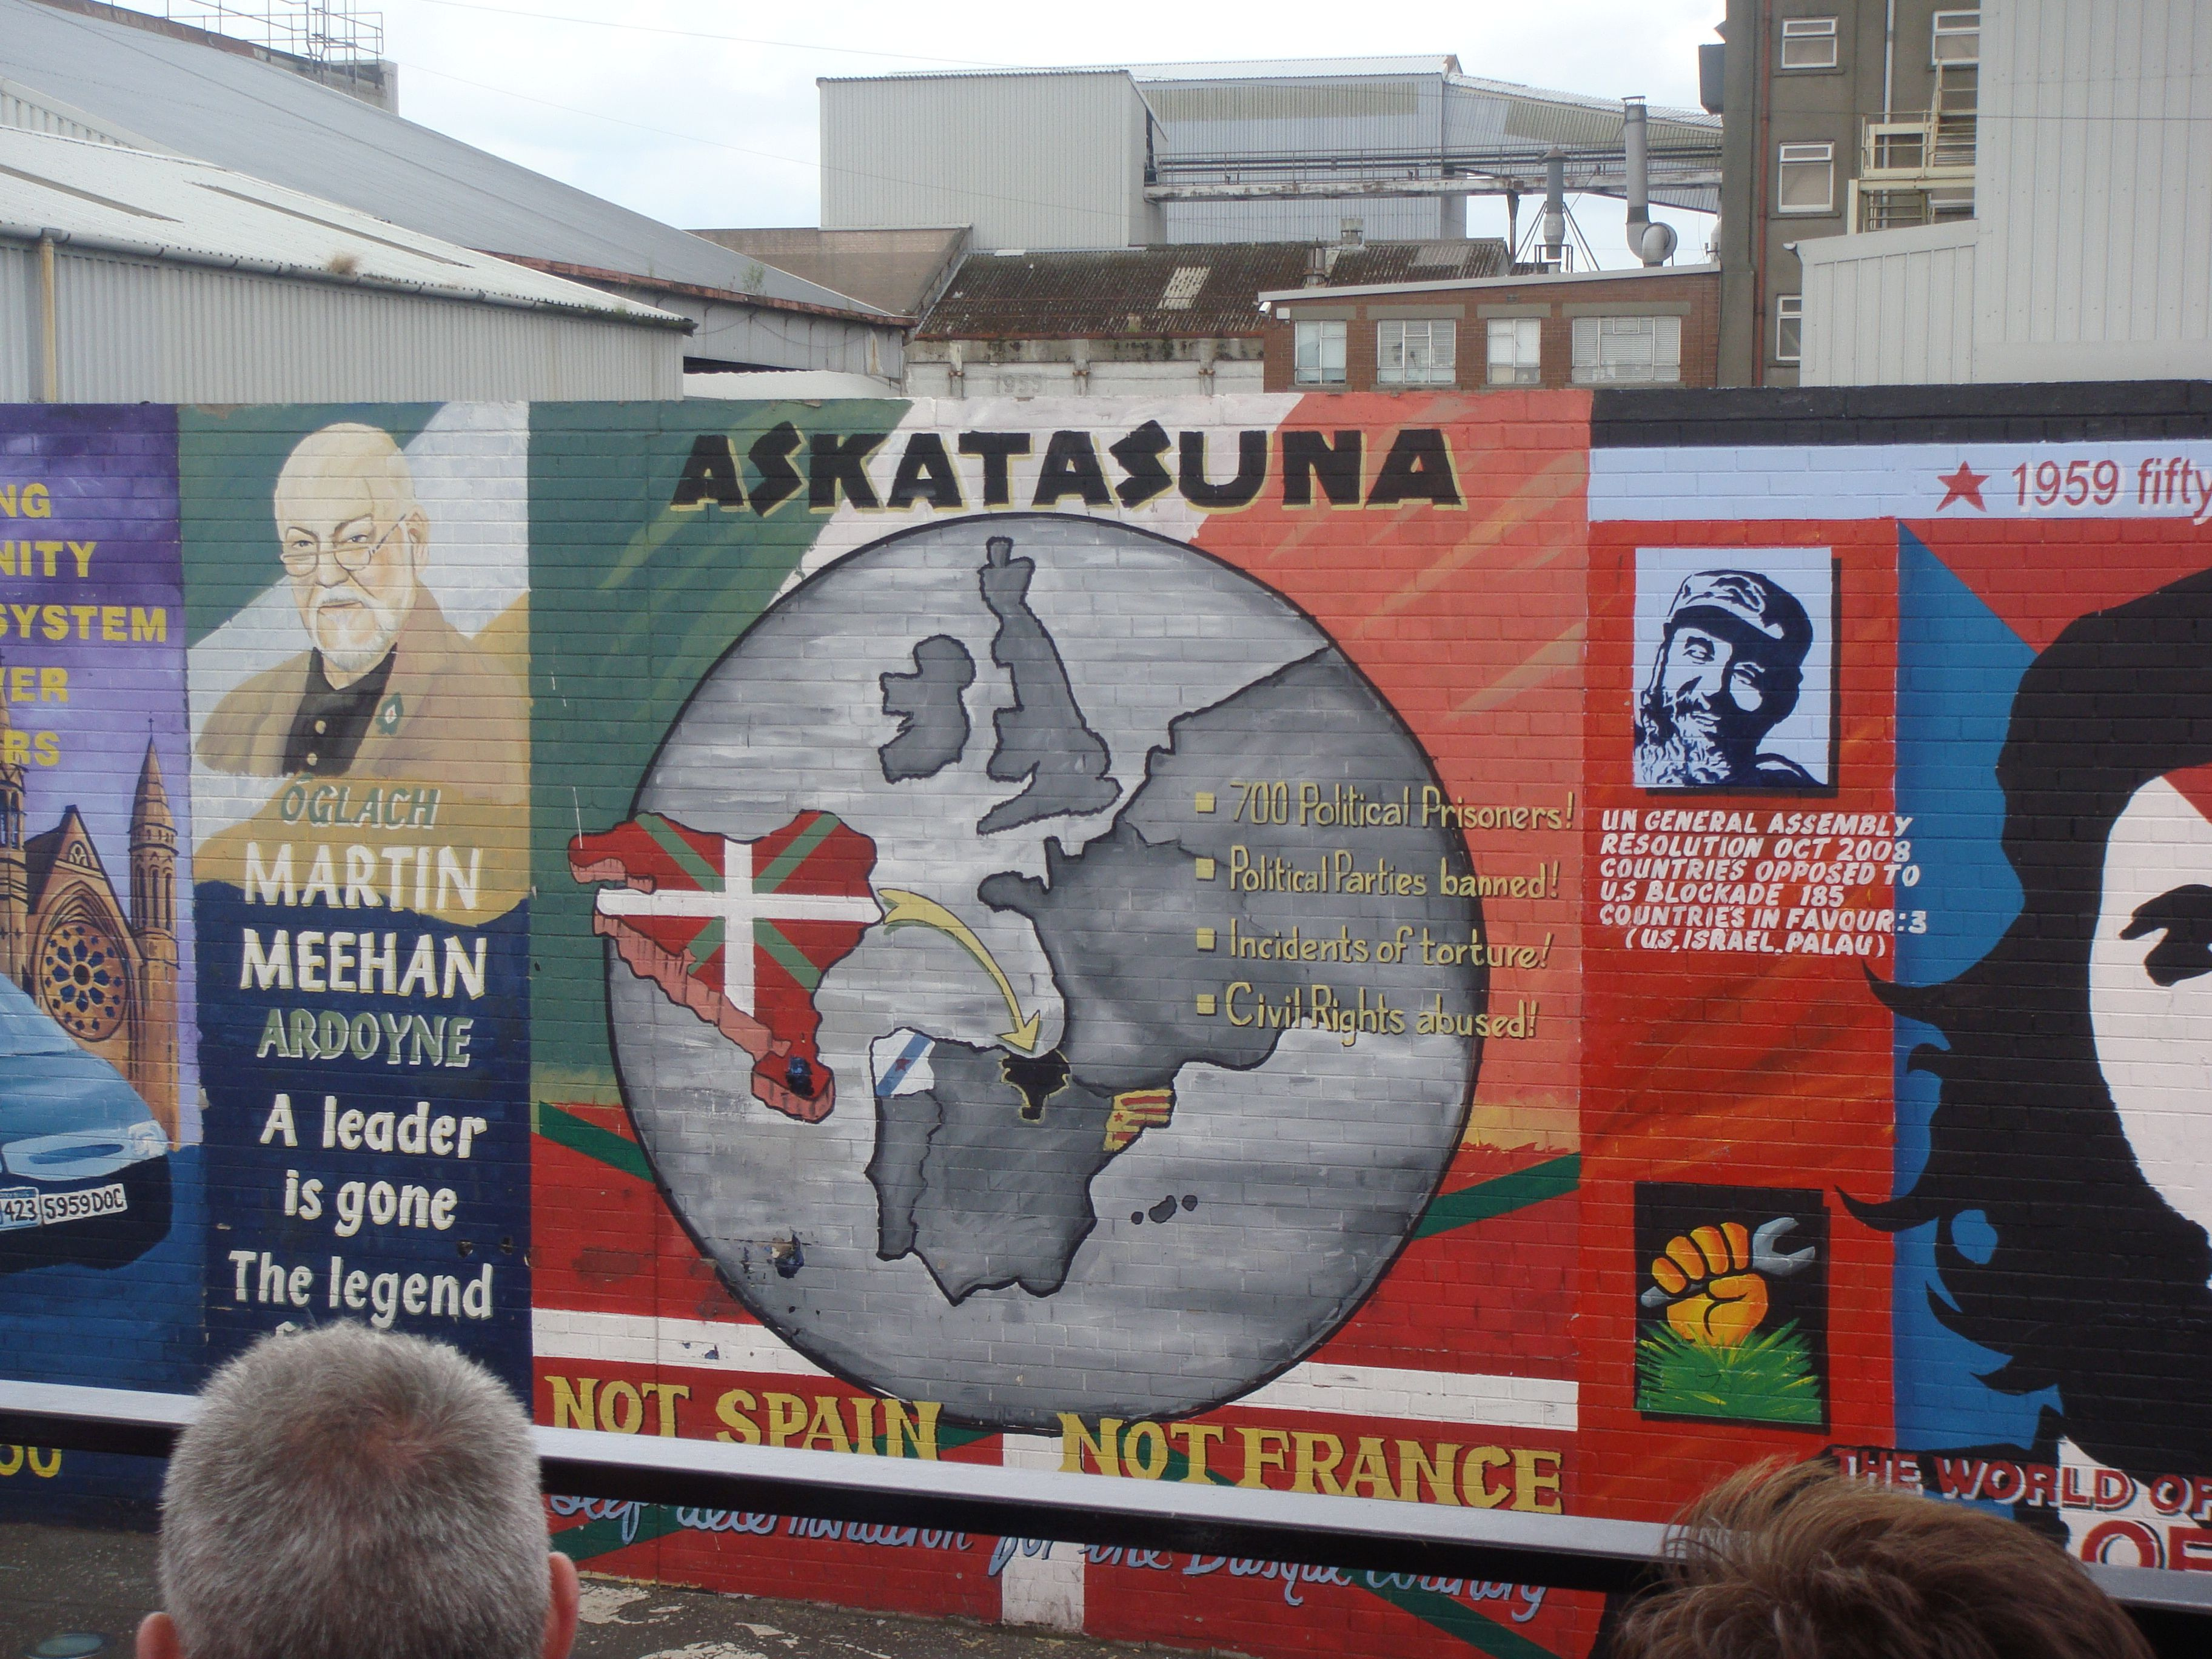 Basque Country Freedom Belfast Freedom Basque Country Basque